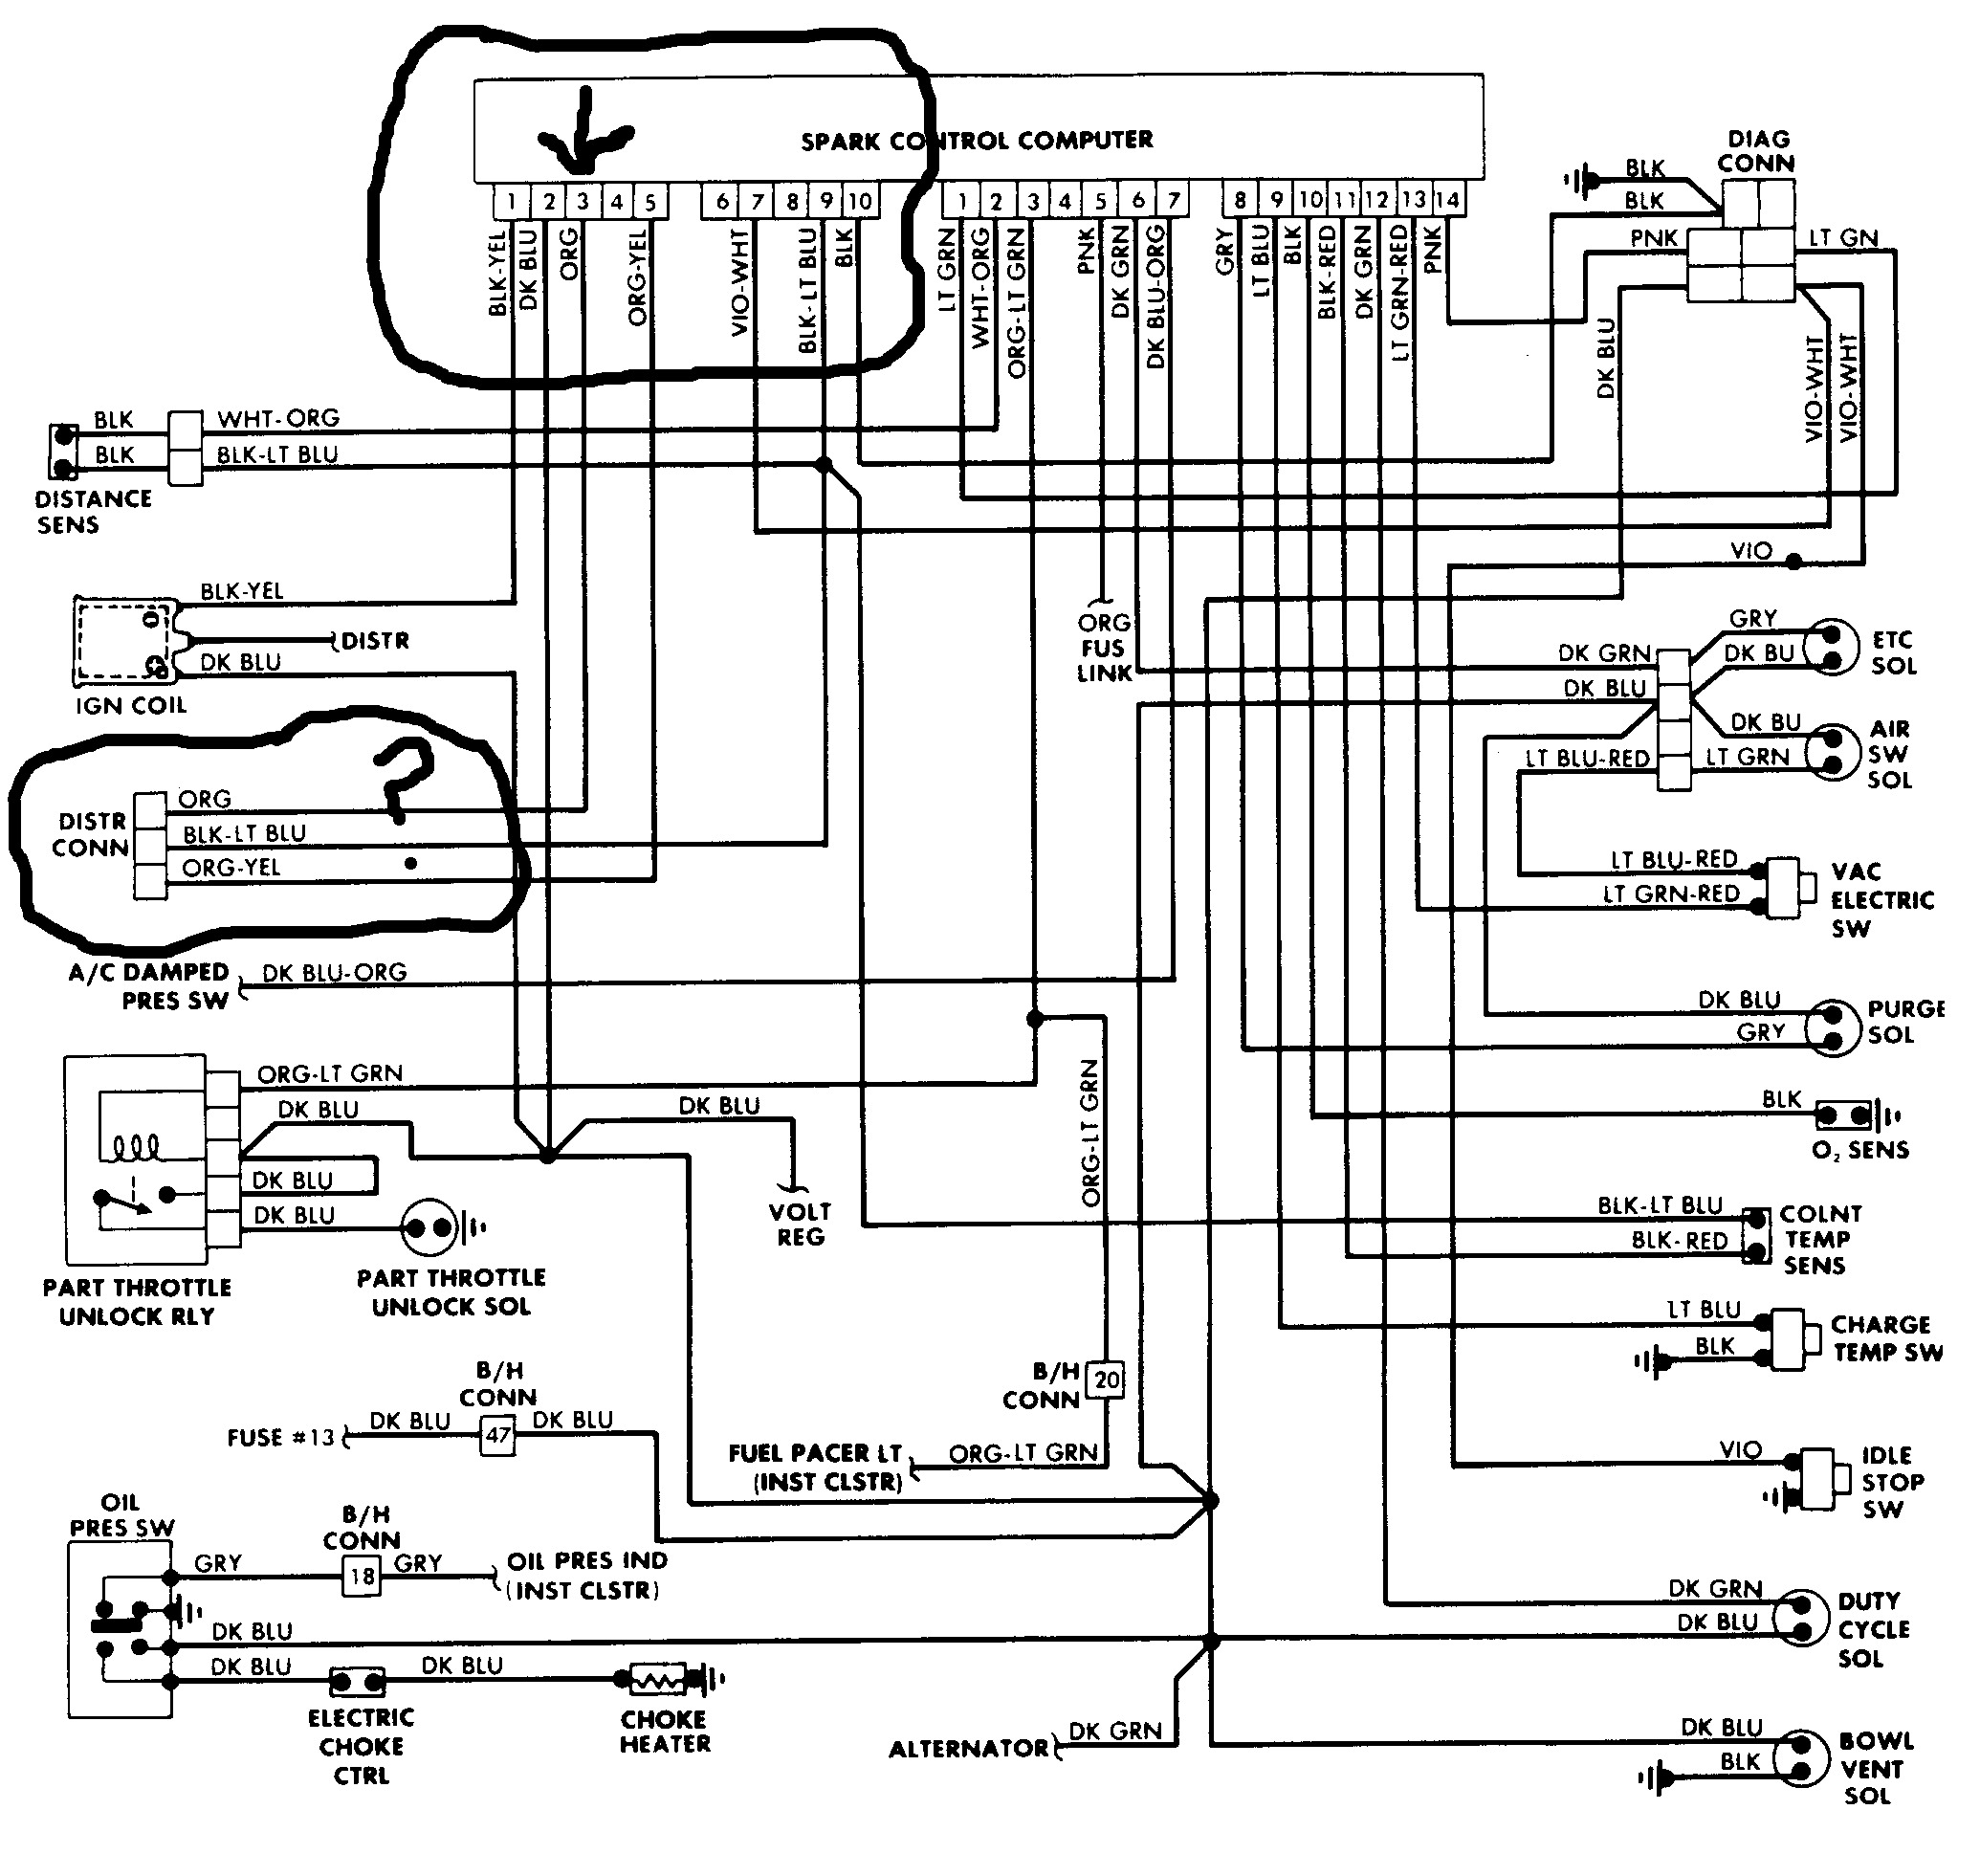 1987 dodge dakota 3 9 engine diagram  dodge  auto parts